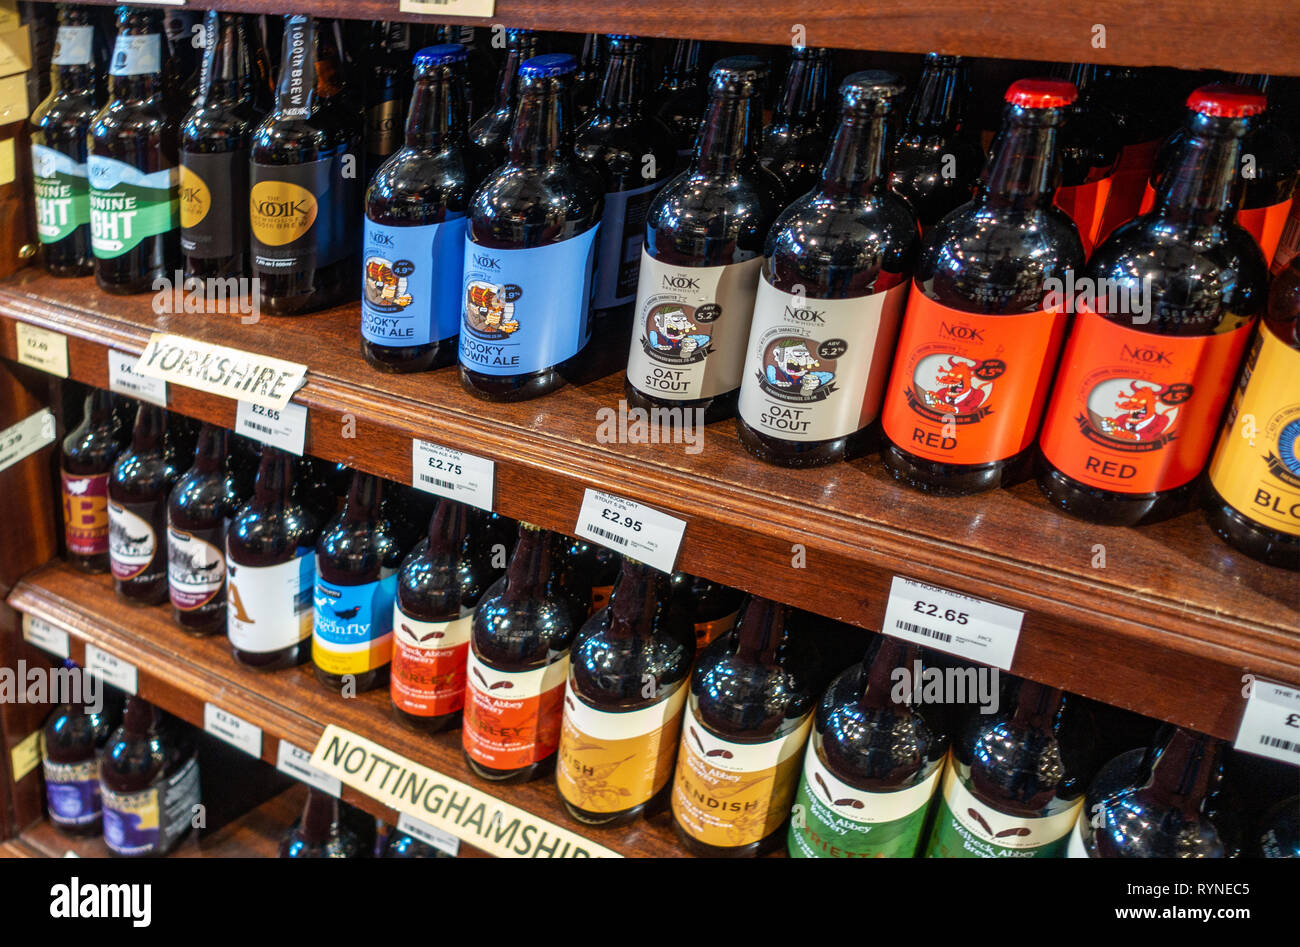 Off Licence Stock Photos & Off Licence Stock Images - Alamy